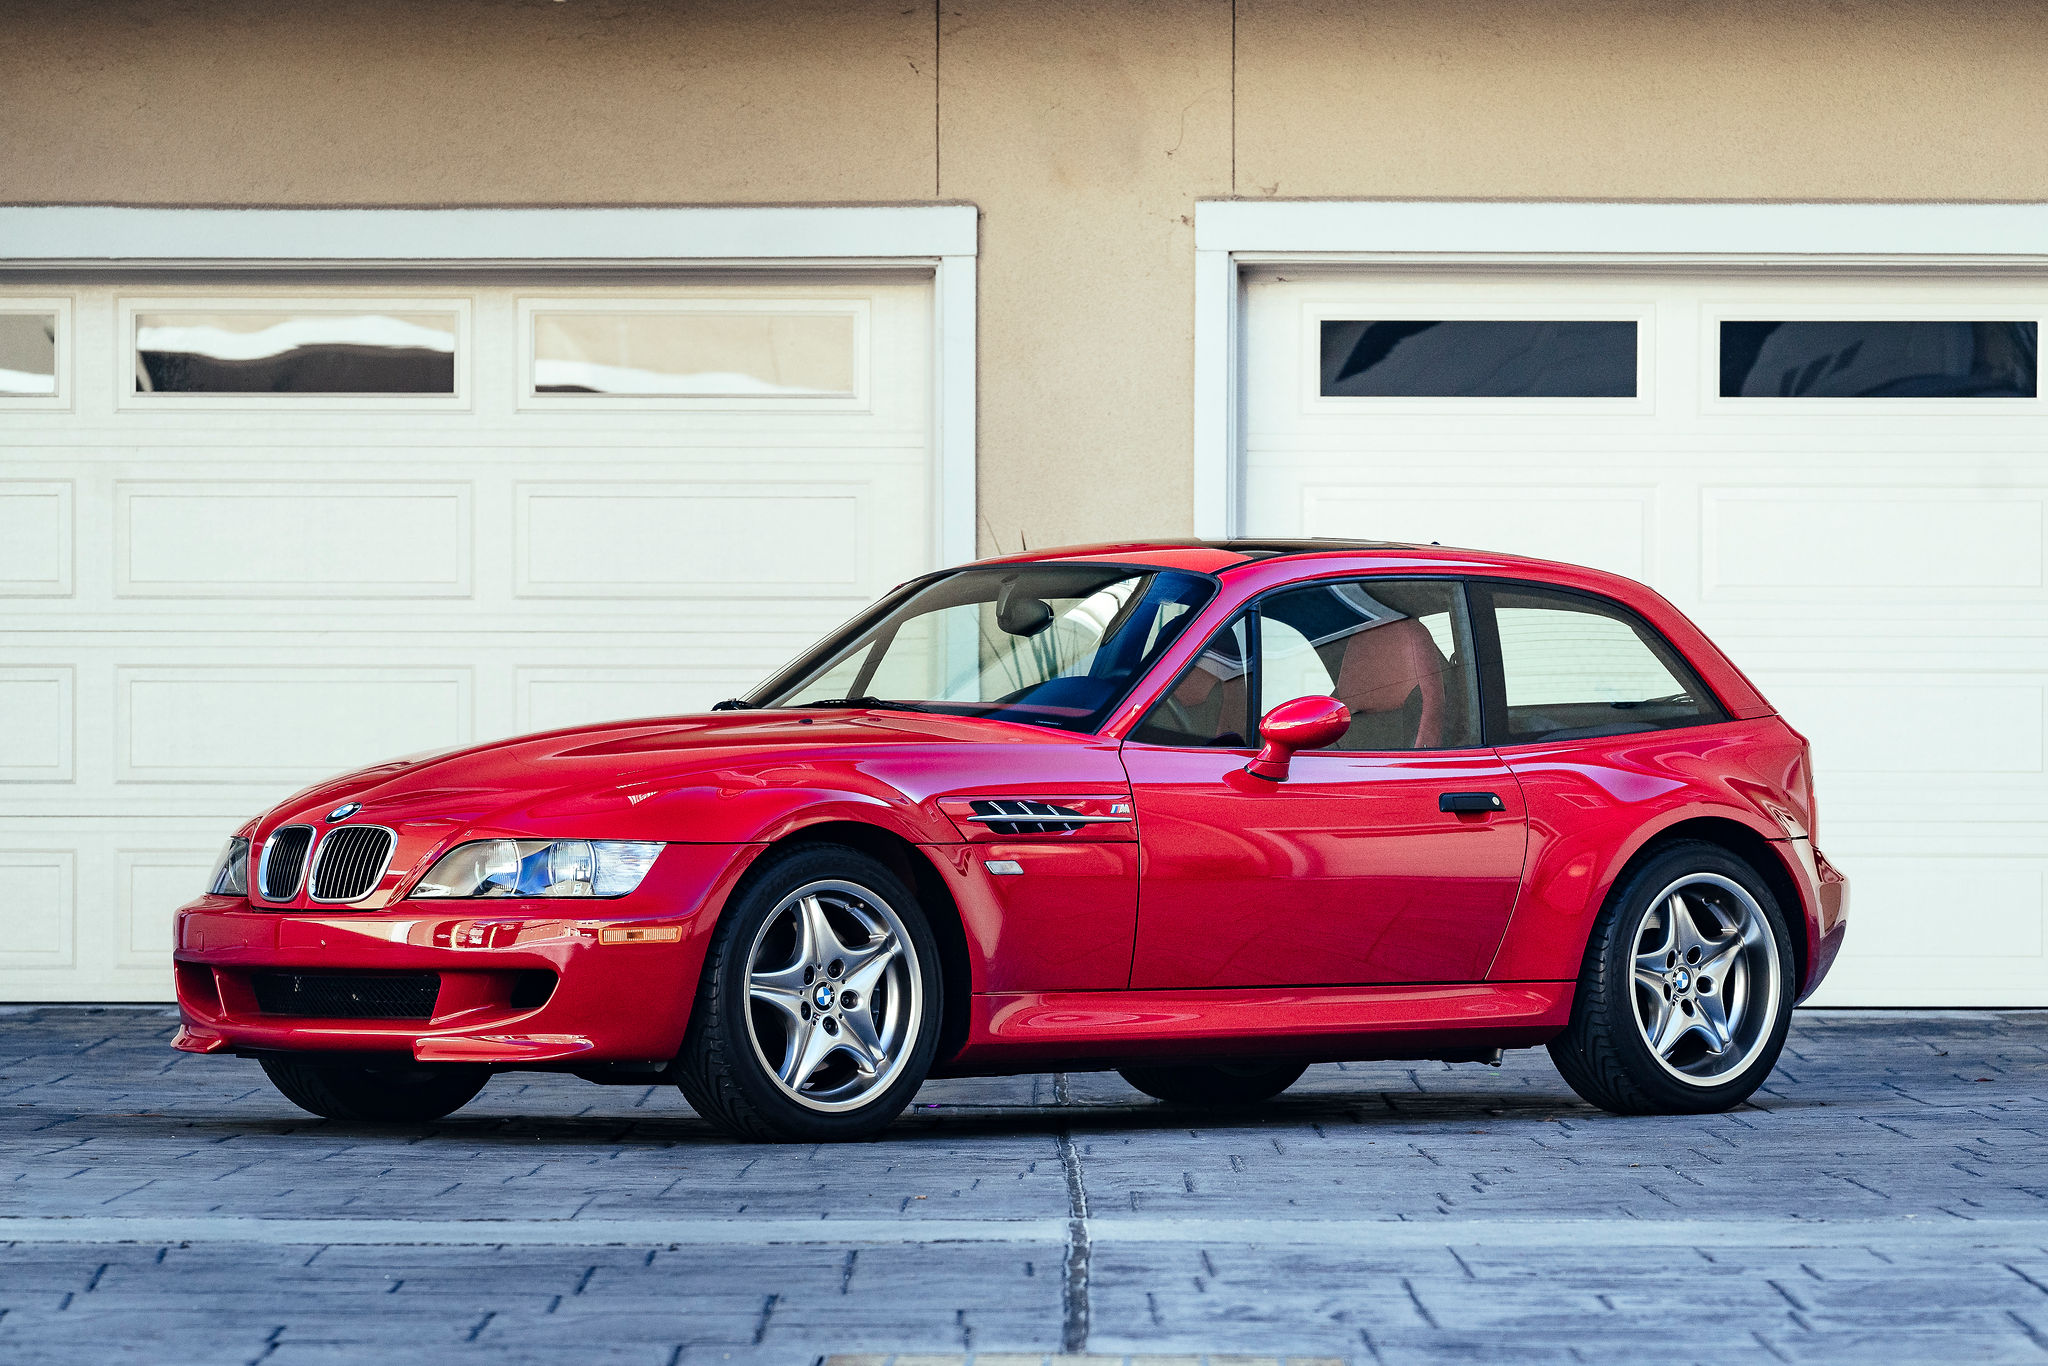 BMW M Coupe sells for $92K on Bring A Trailer thumbnail